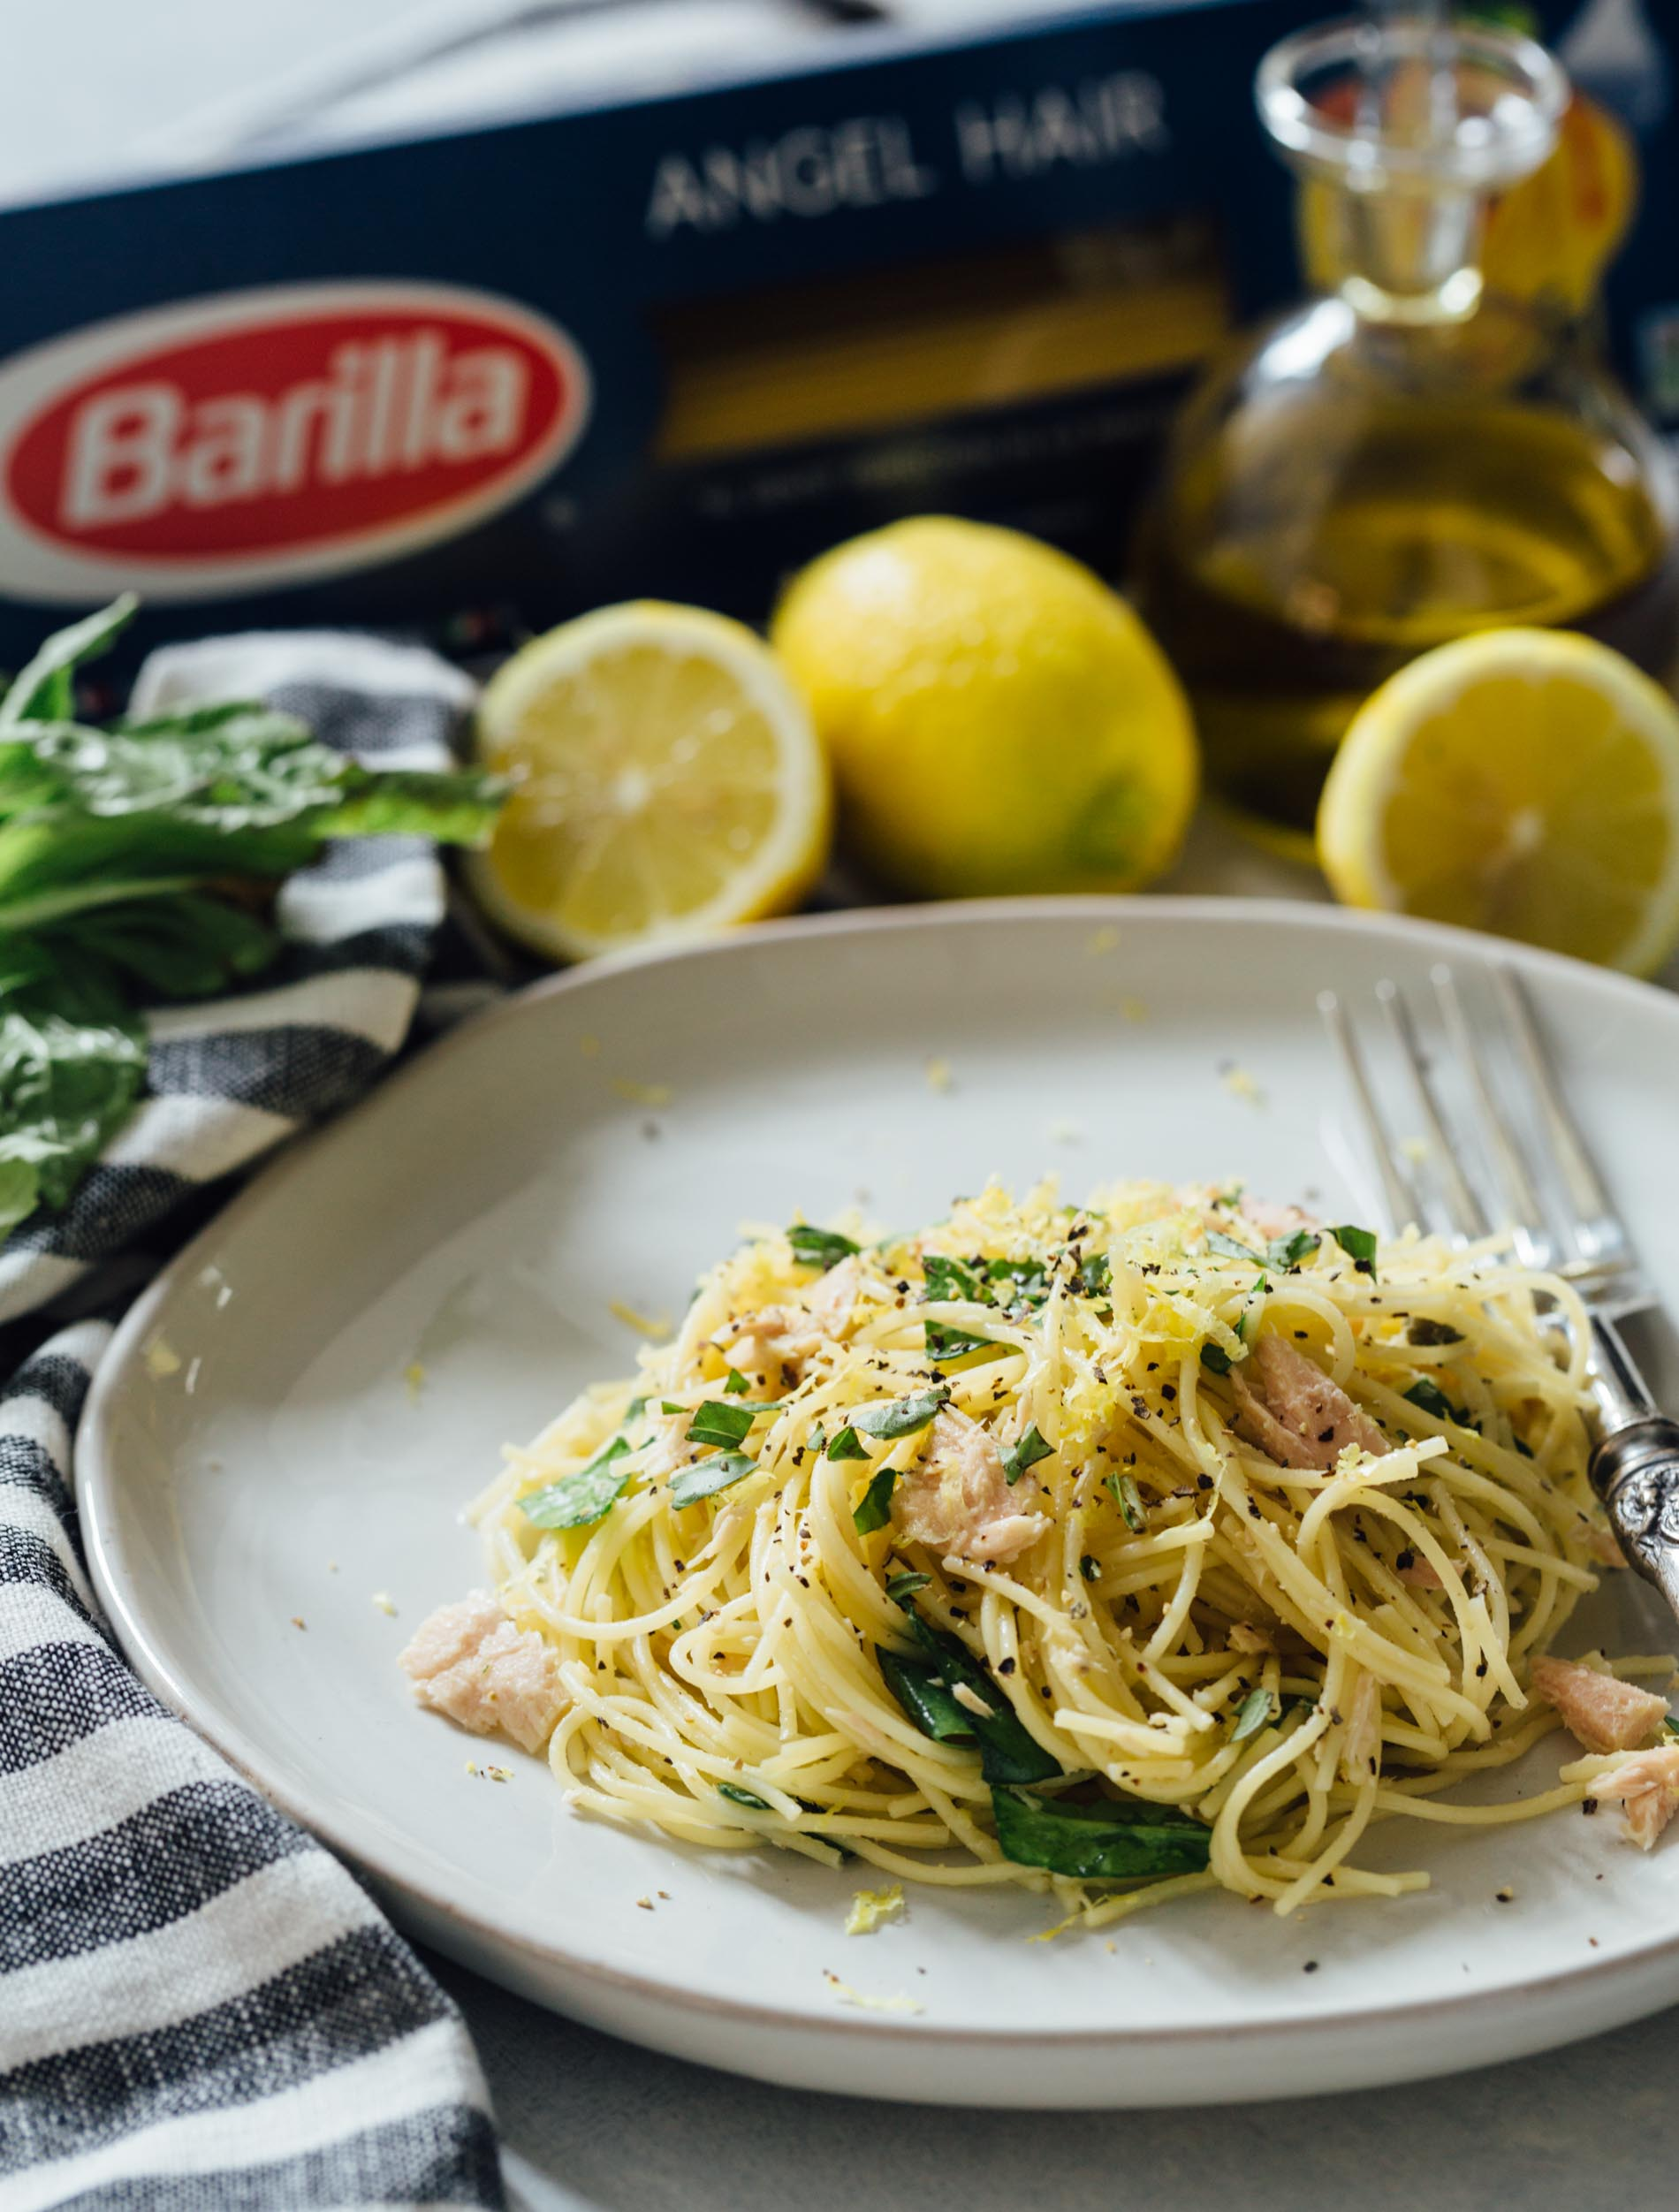 A refreshingly light yet bold and easy zesty pasta dish that uses canned tuna and lemon in a way that you may not have thought to use before!